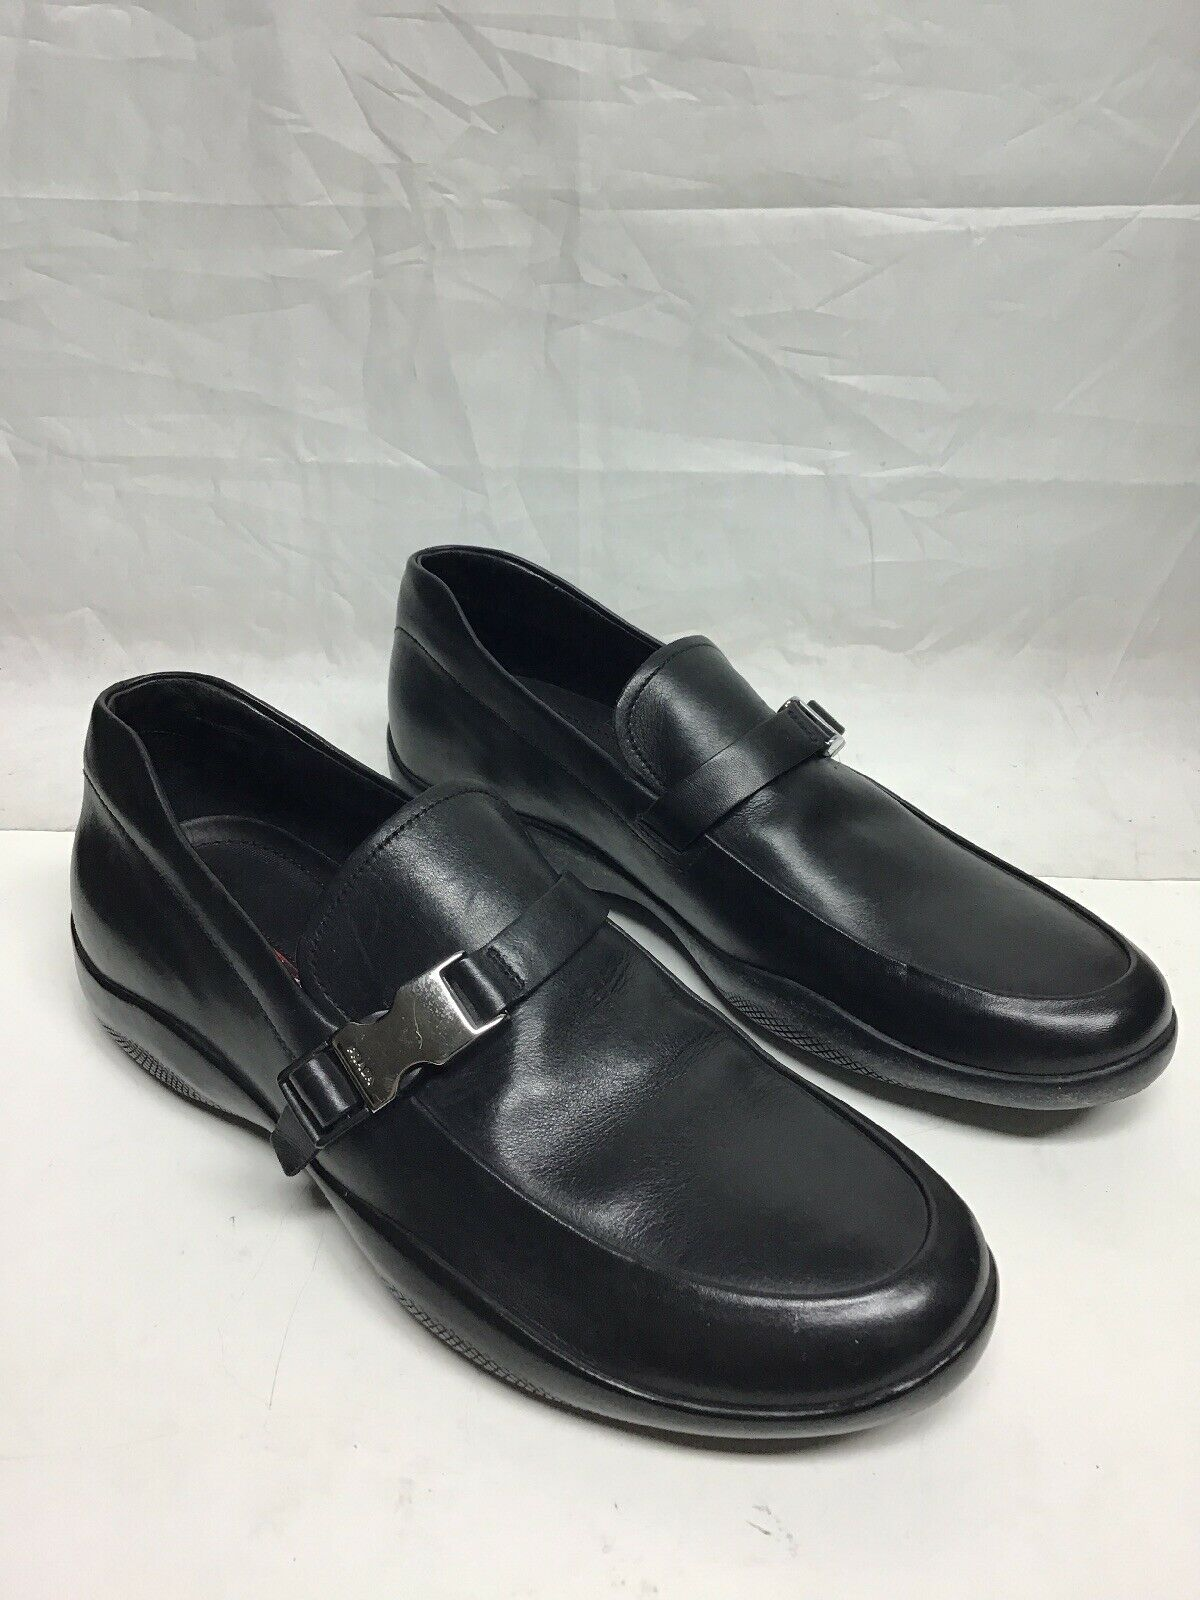 Prada nero Buckle Trimmed loafers 7 8US